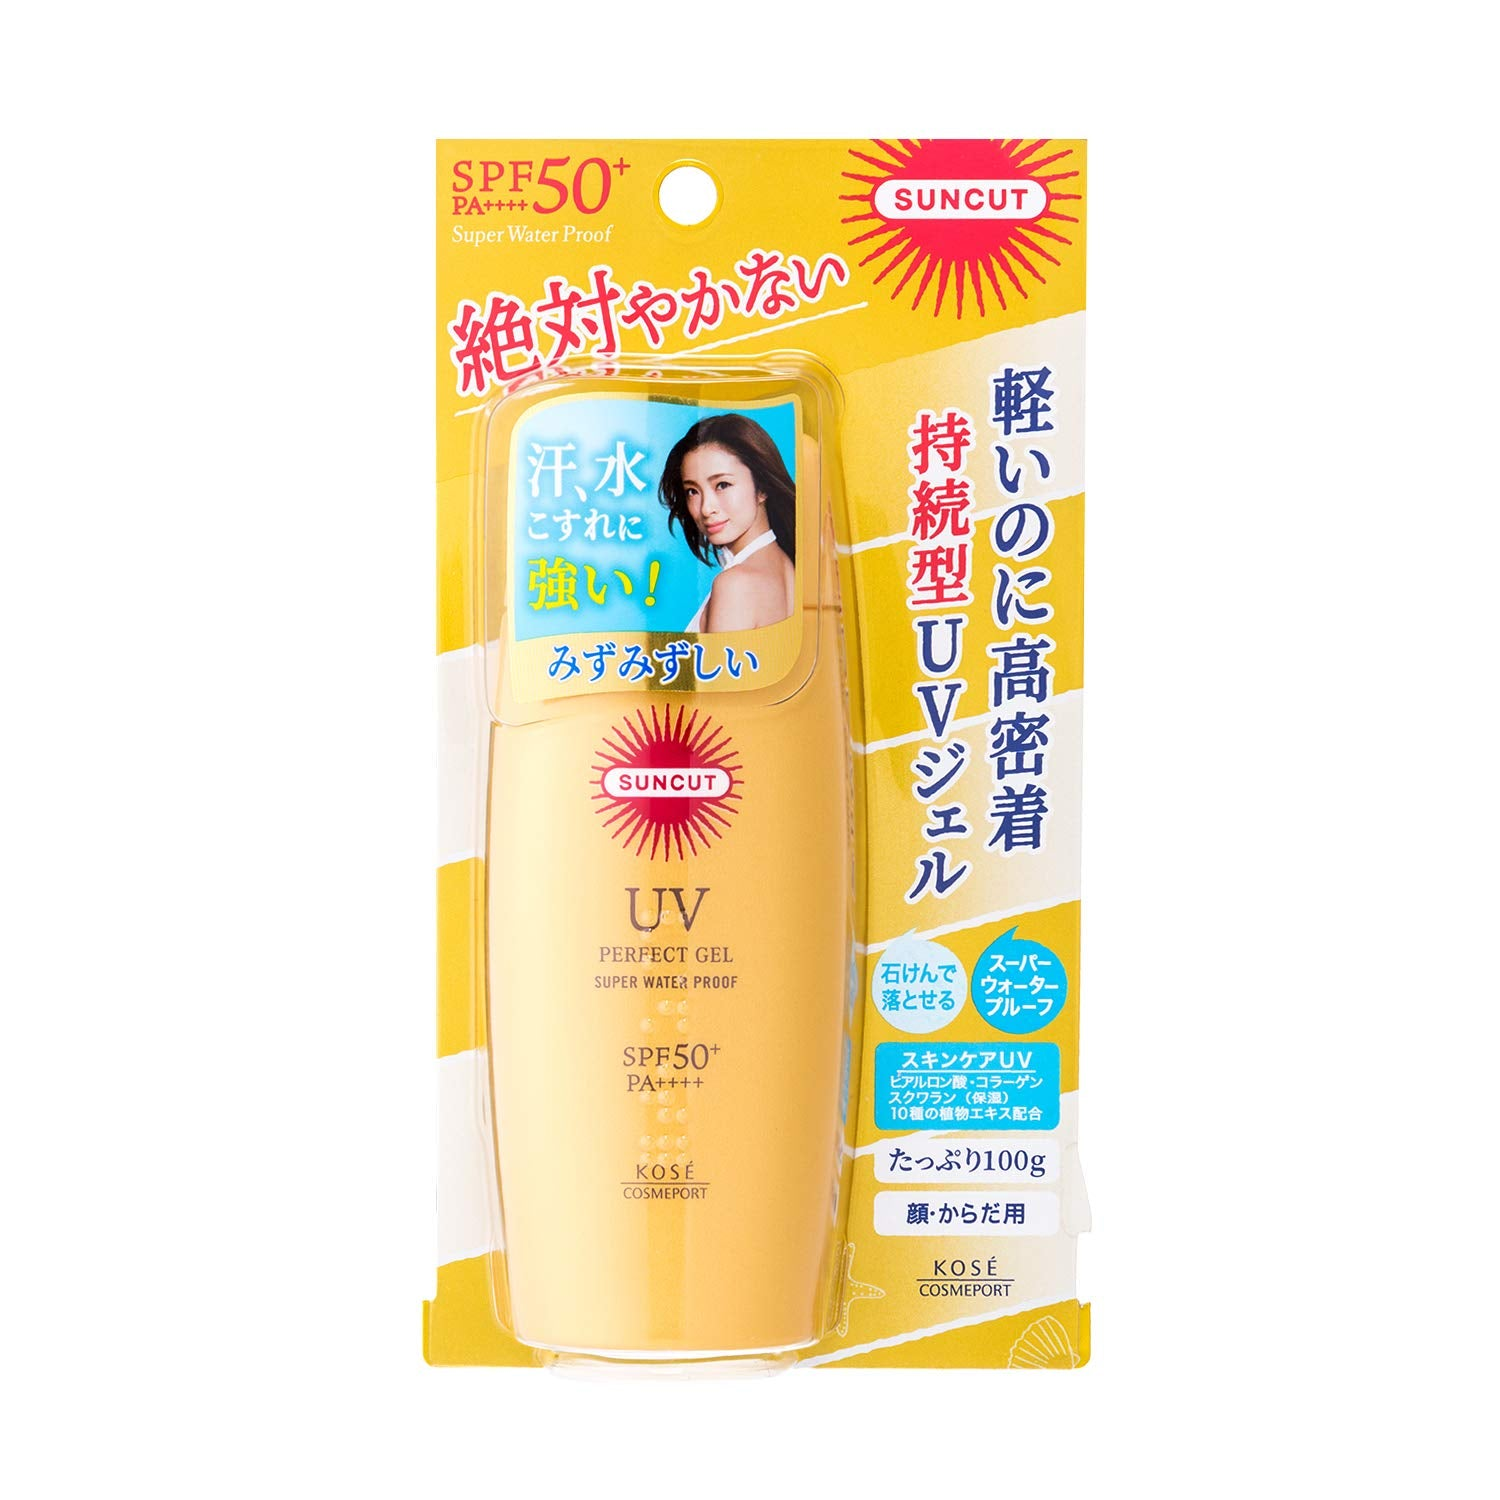 KOSE Suncut Perfect UV Gel SPF50+ P++++ (Fragrance Free)